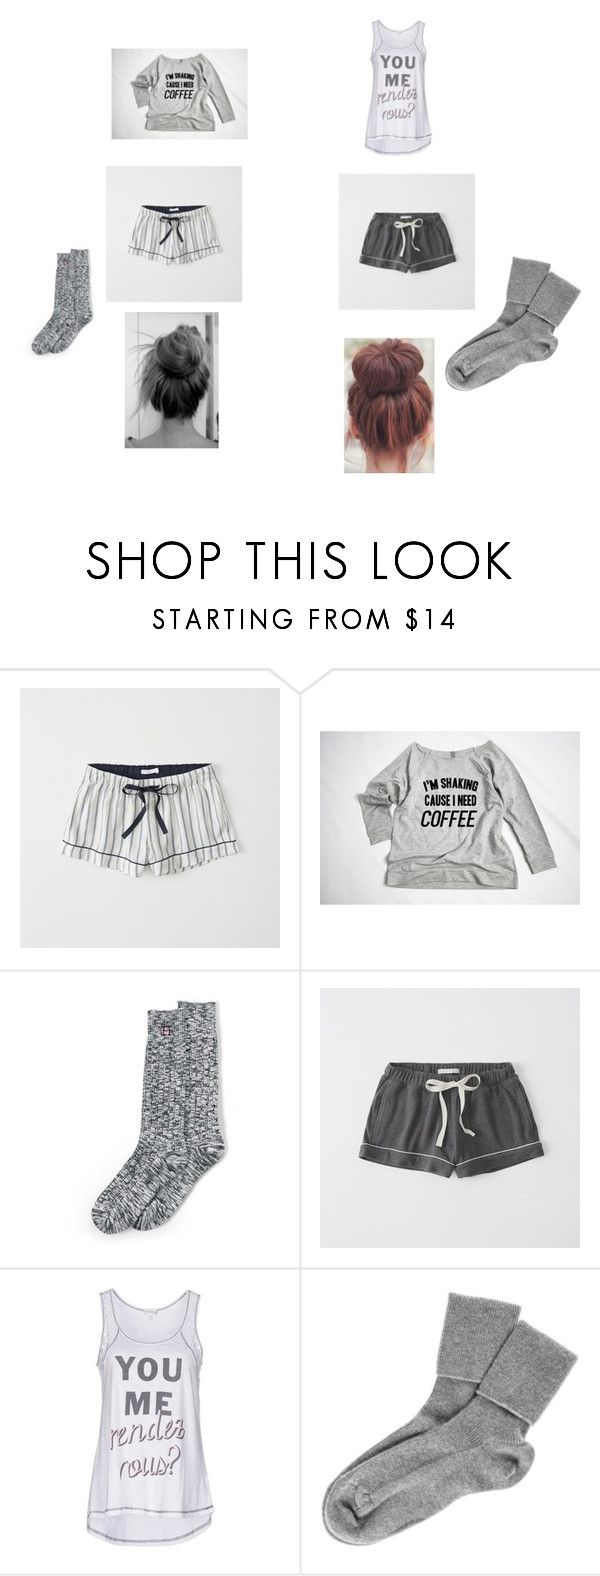 """""""Sick Day With Bestfriend"""" by princessladybug07 on Polyvore featuring Abercrombie & Fitch, Lands' End, P.J. Salvage and Black"""